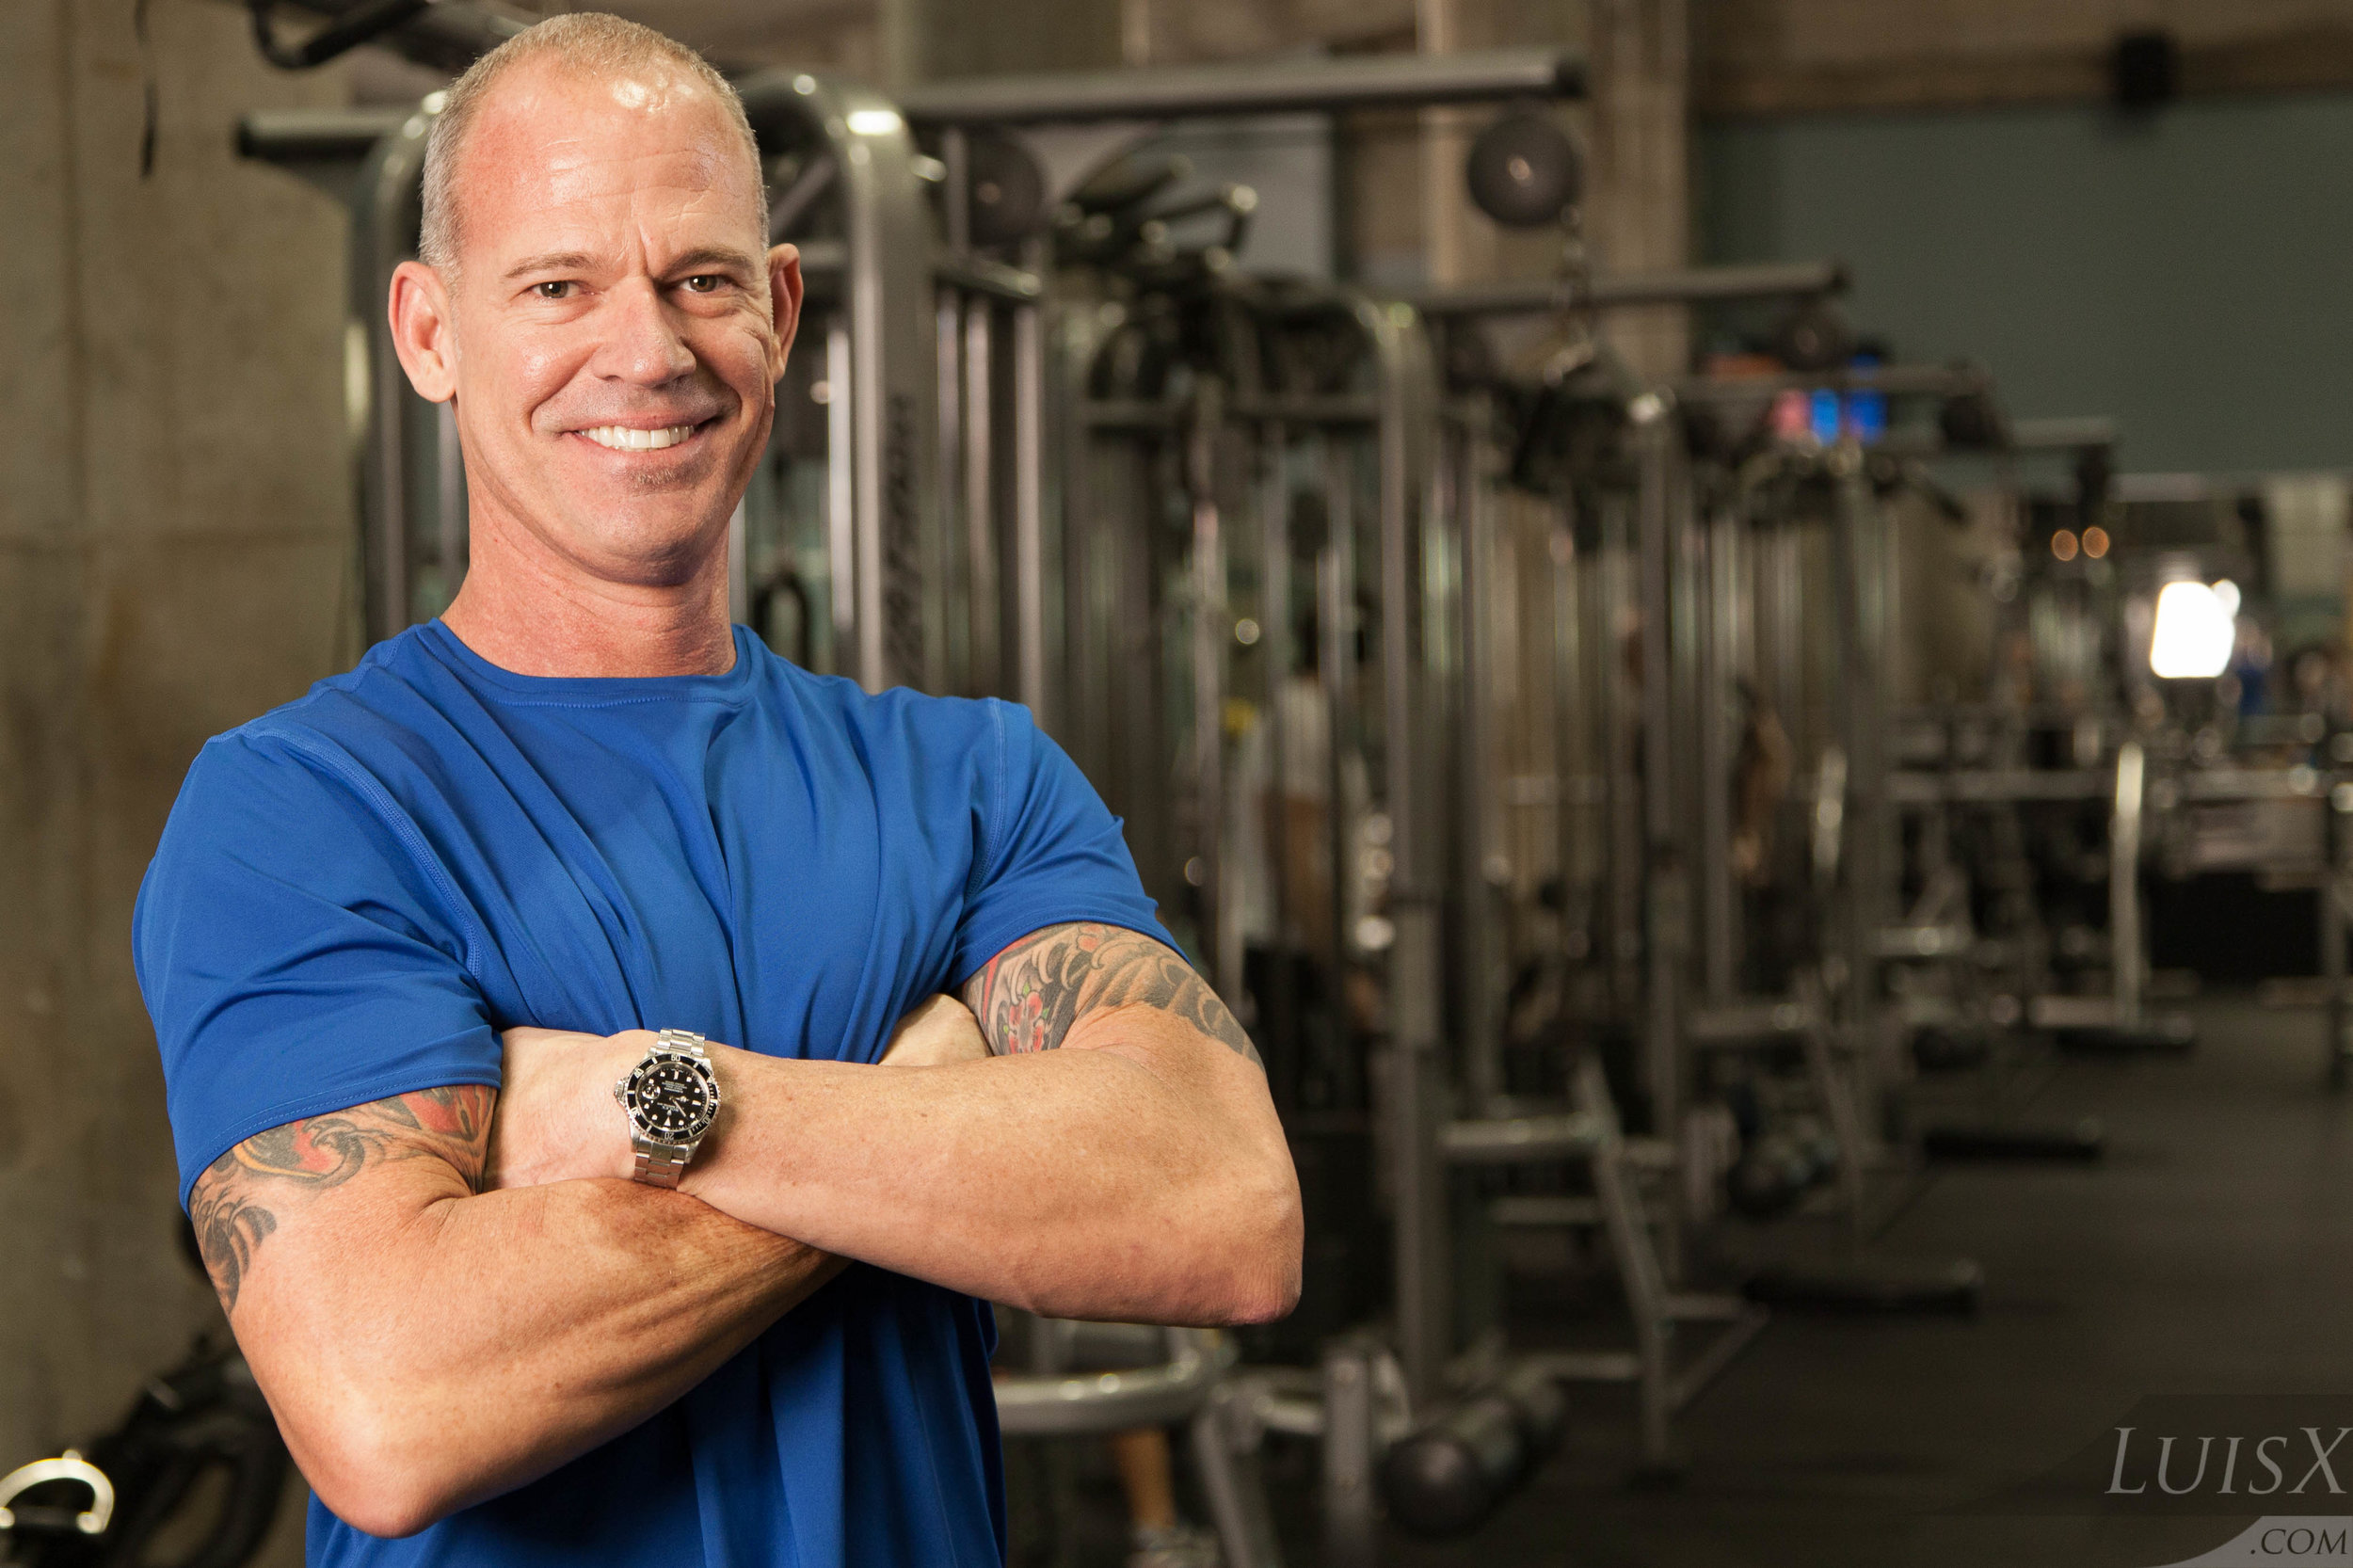 craig chapin personal trainer in tampa